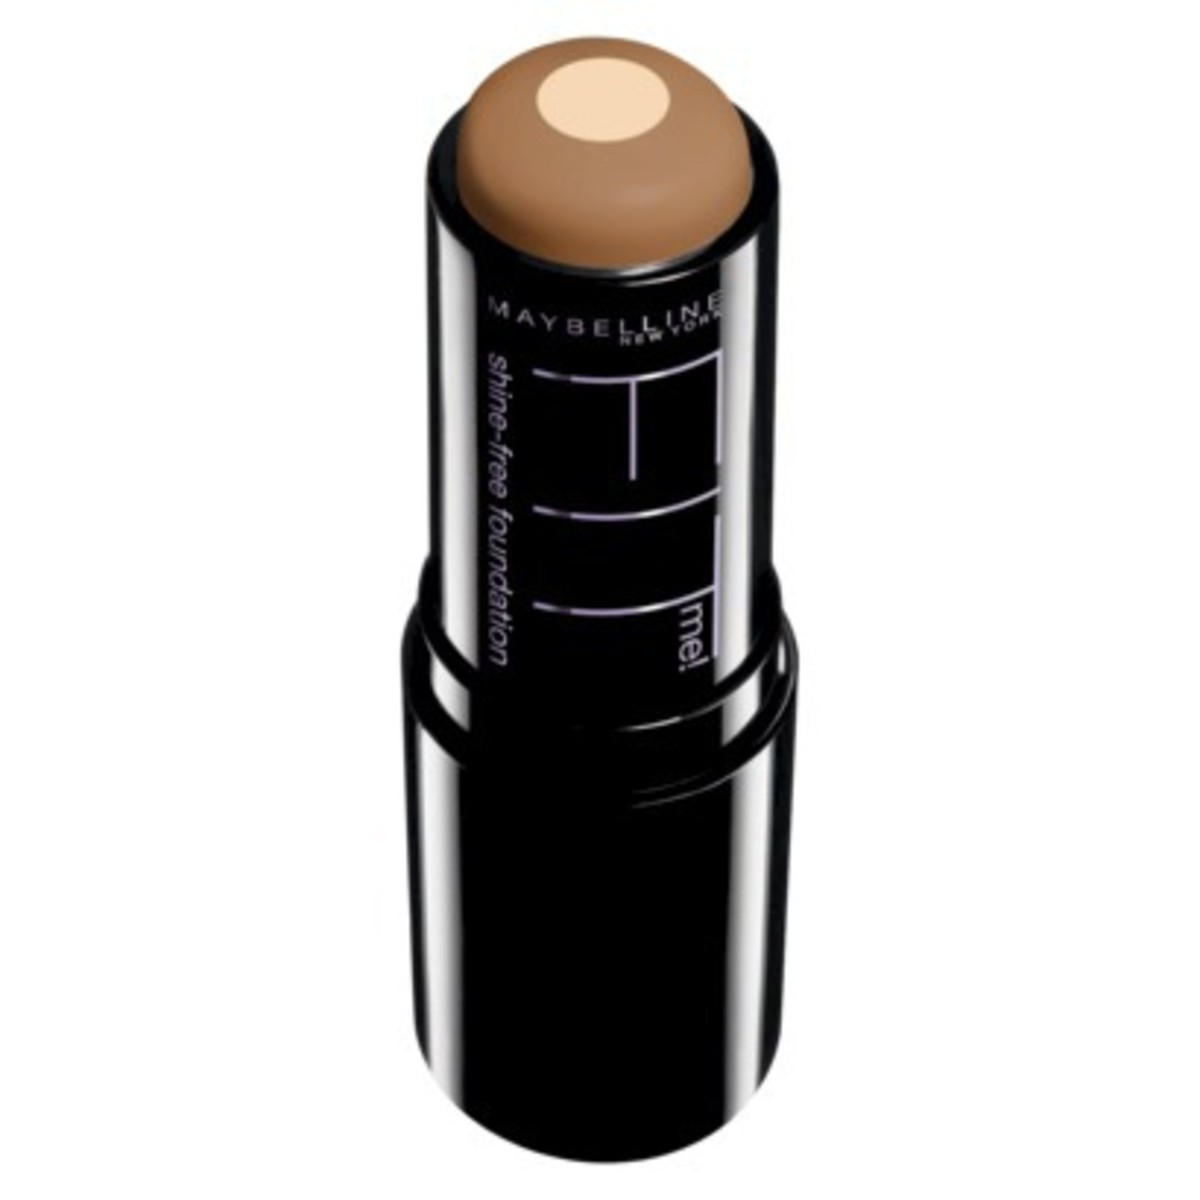 Maybelline Fit Me Shine-Free Foundation